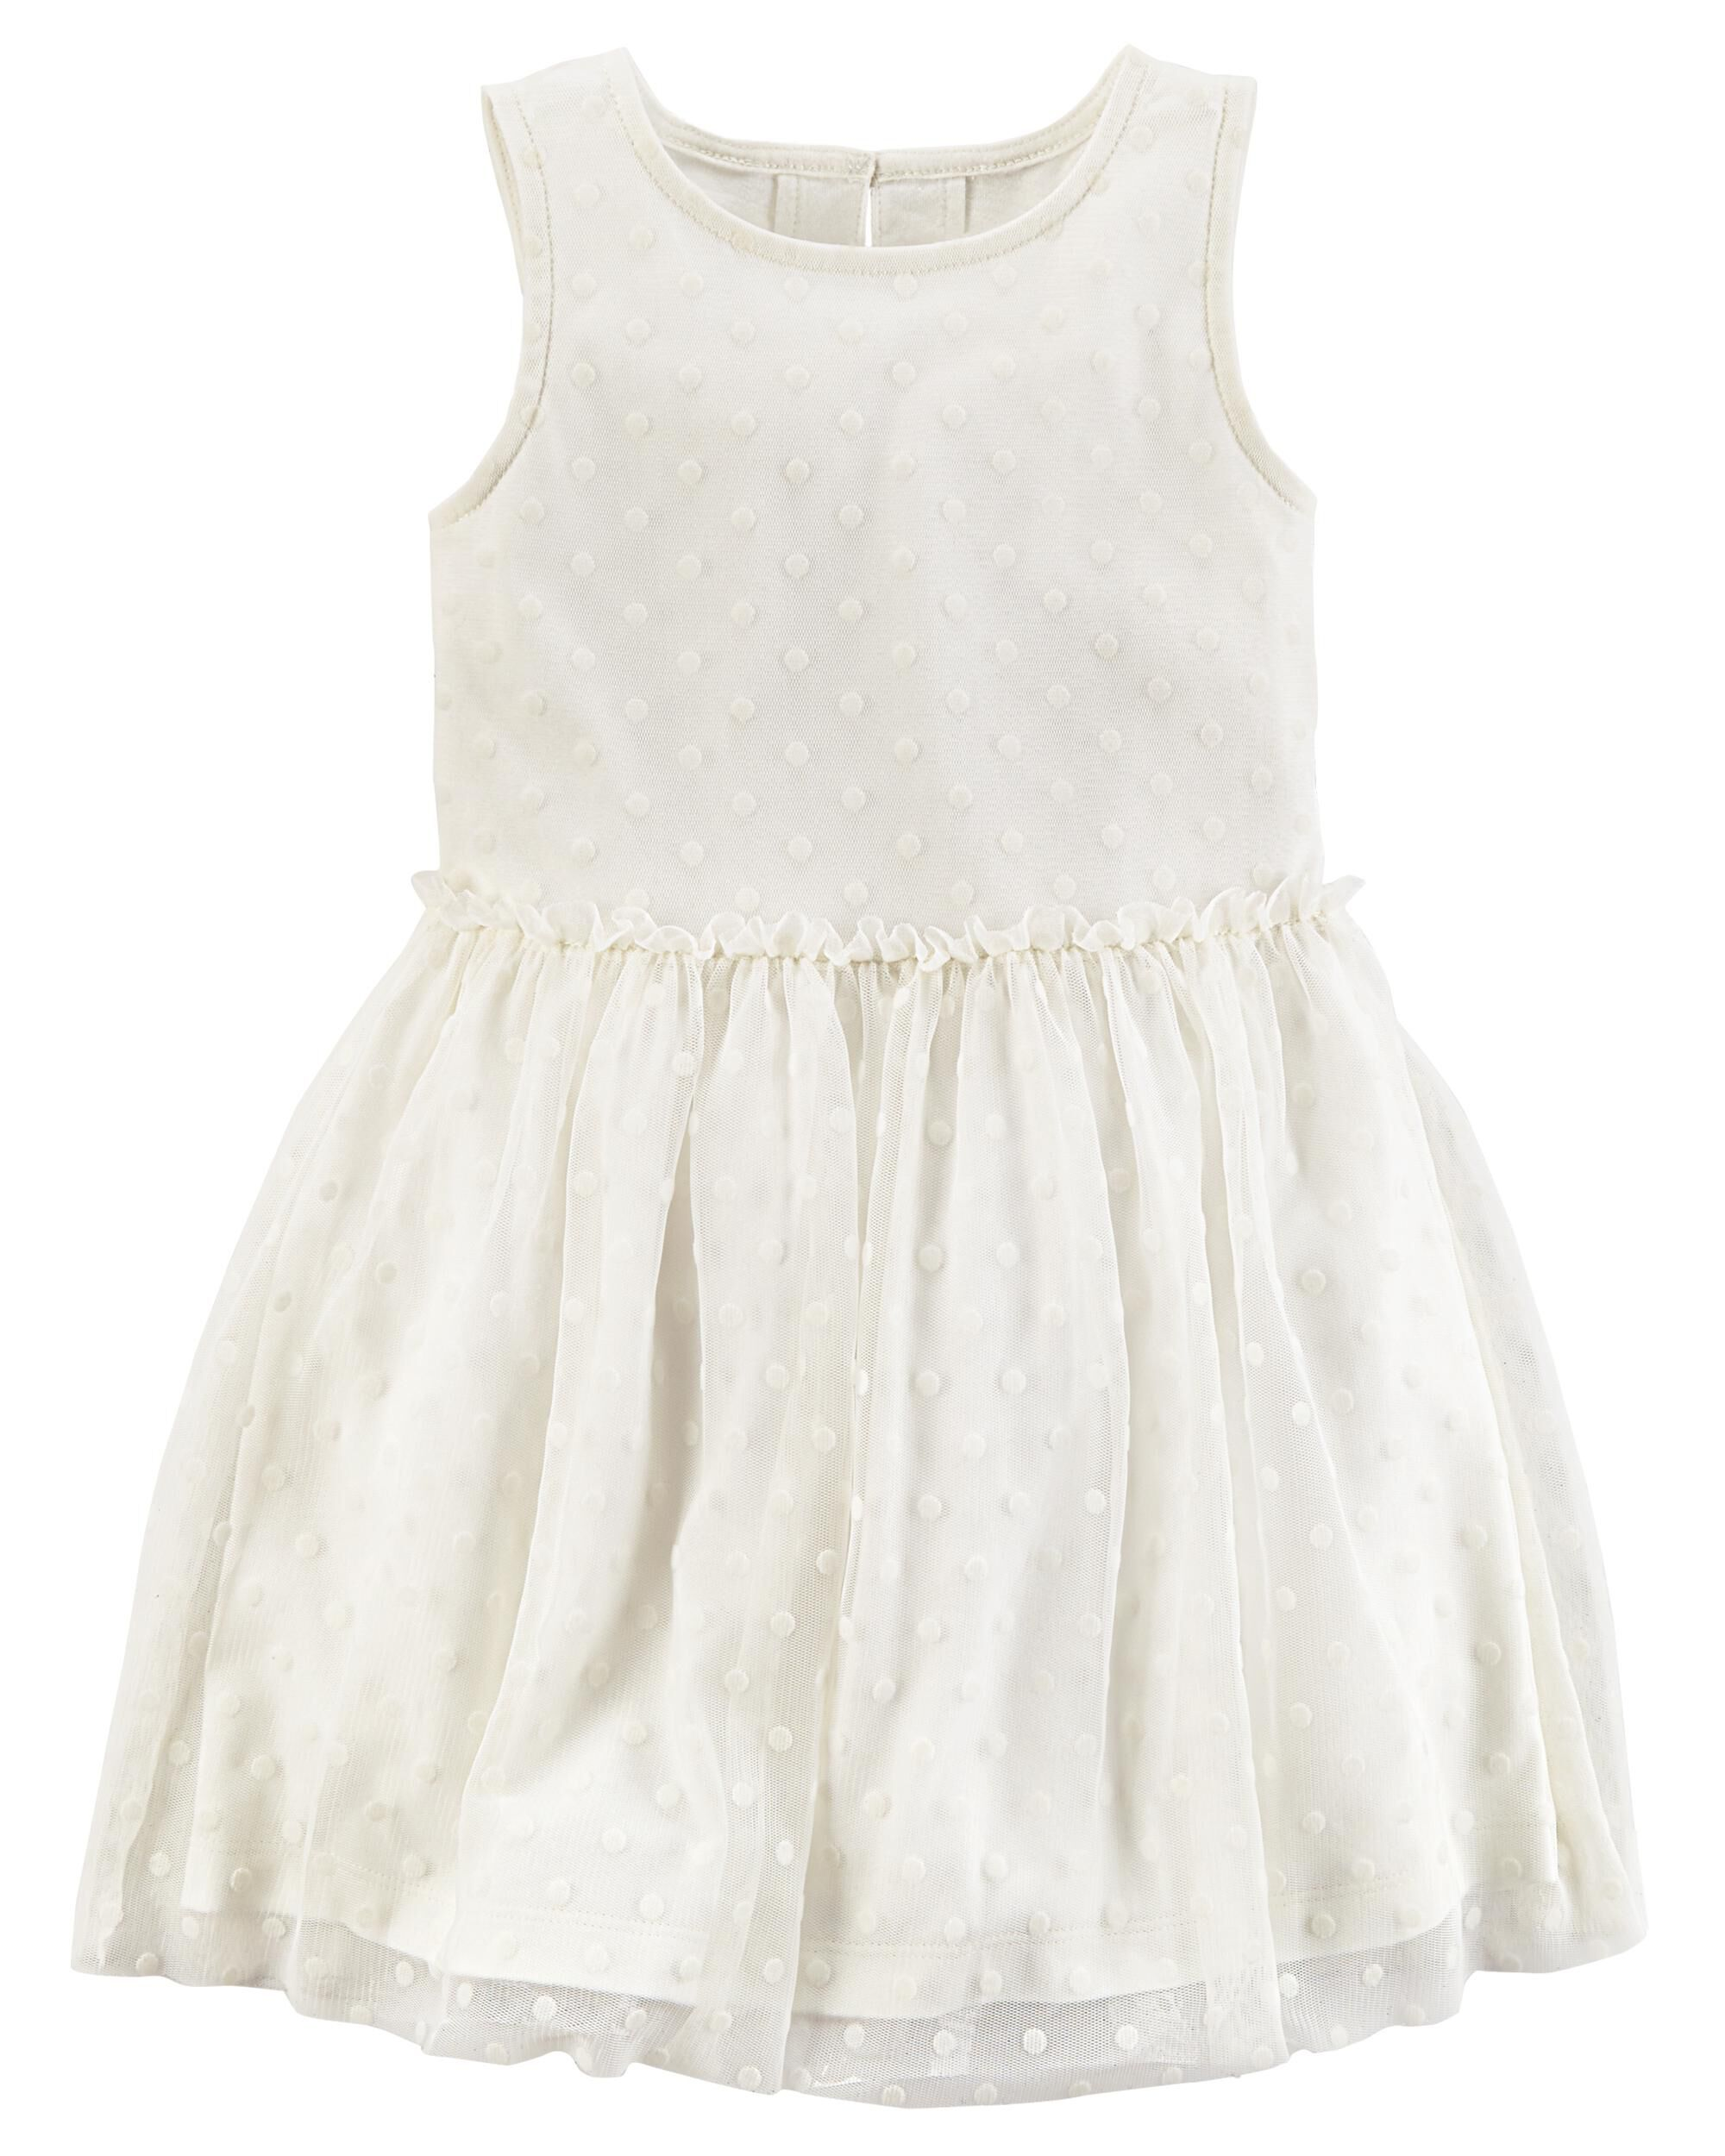 White Satin Dress Carter's